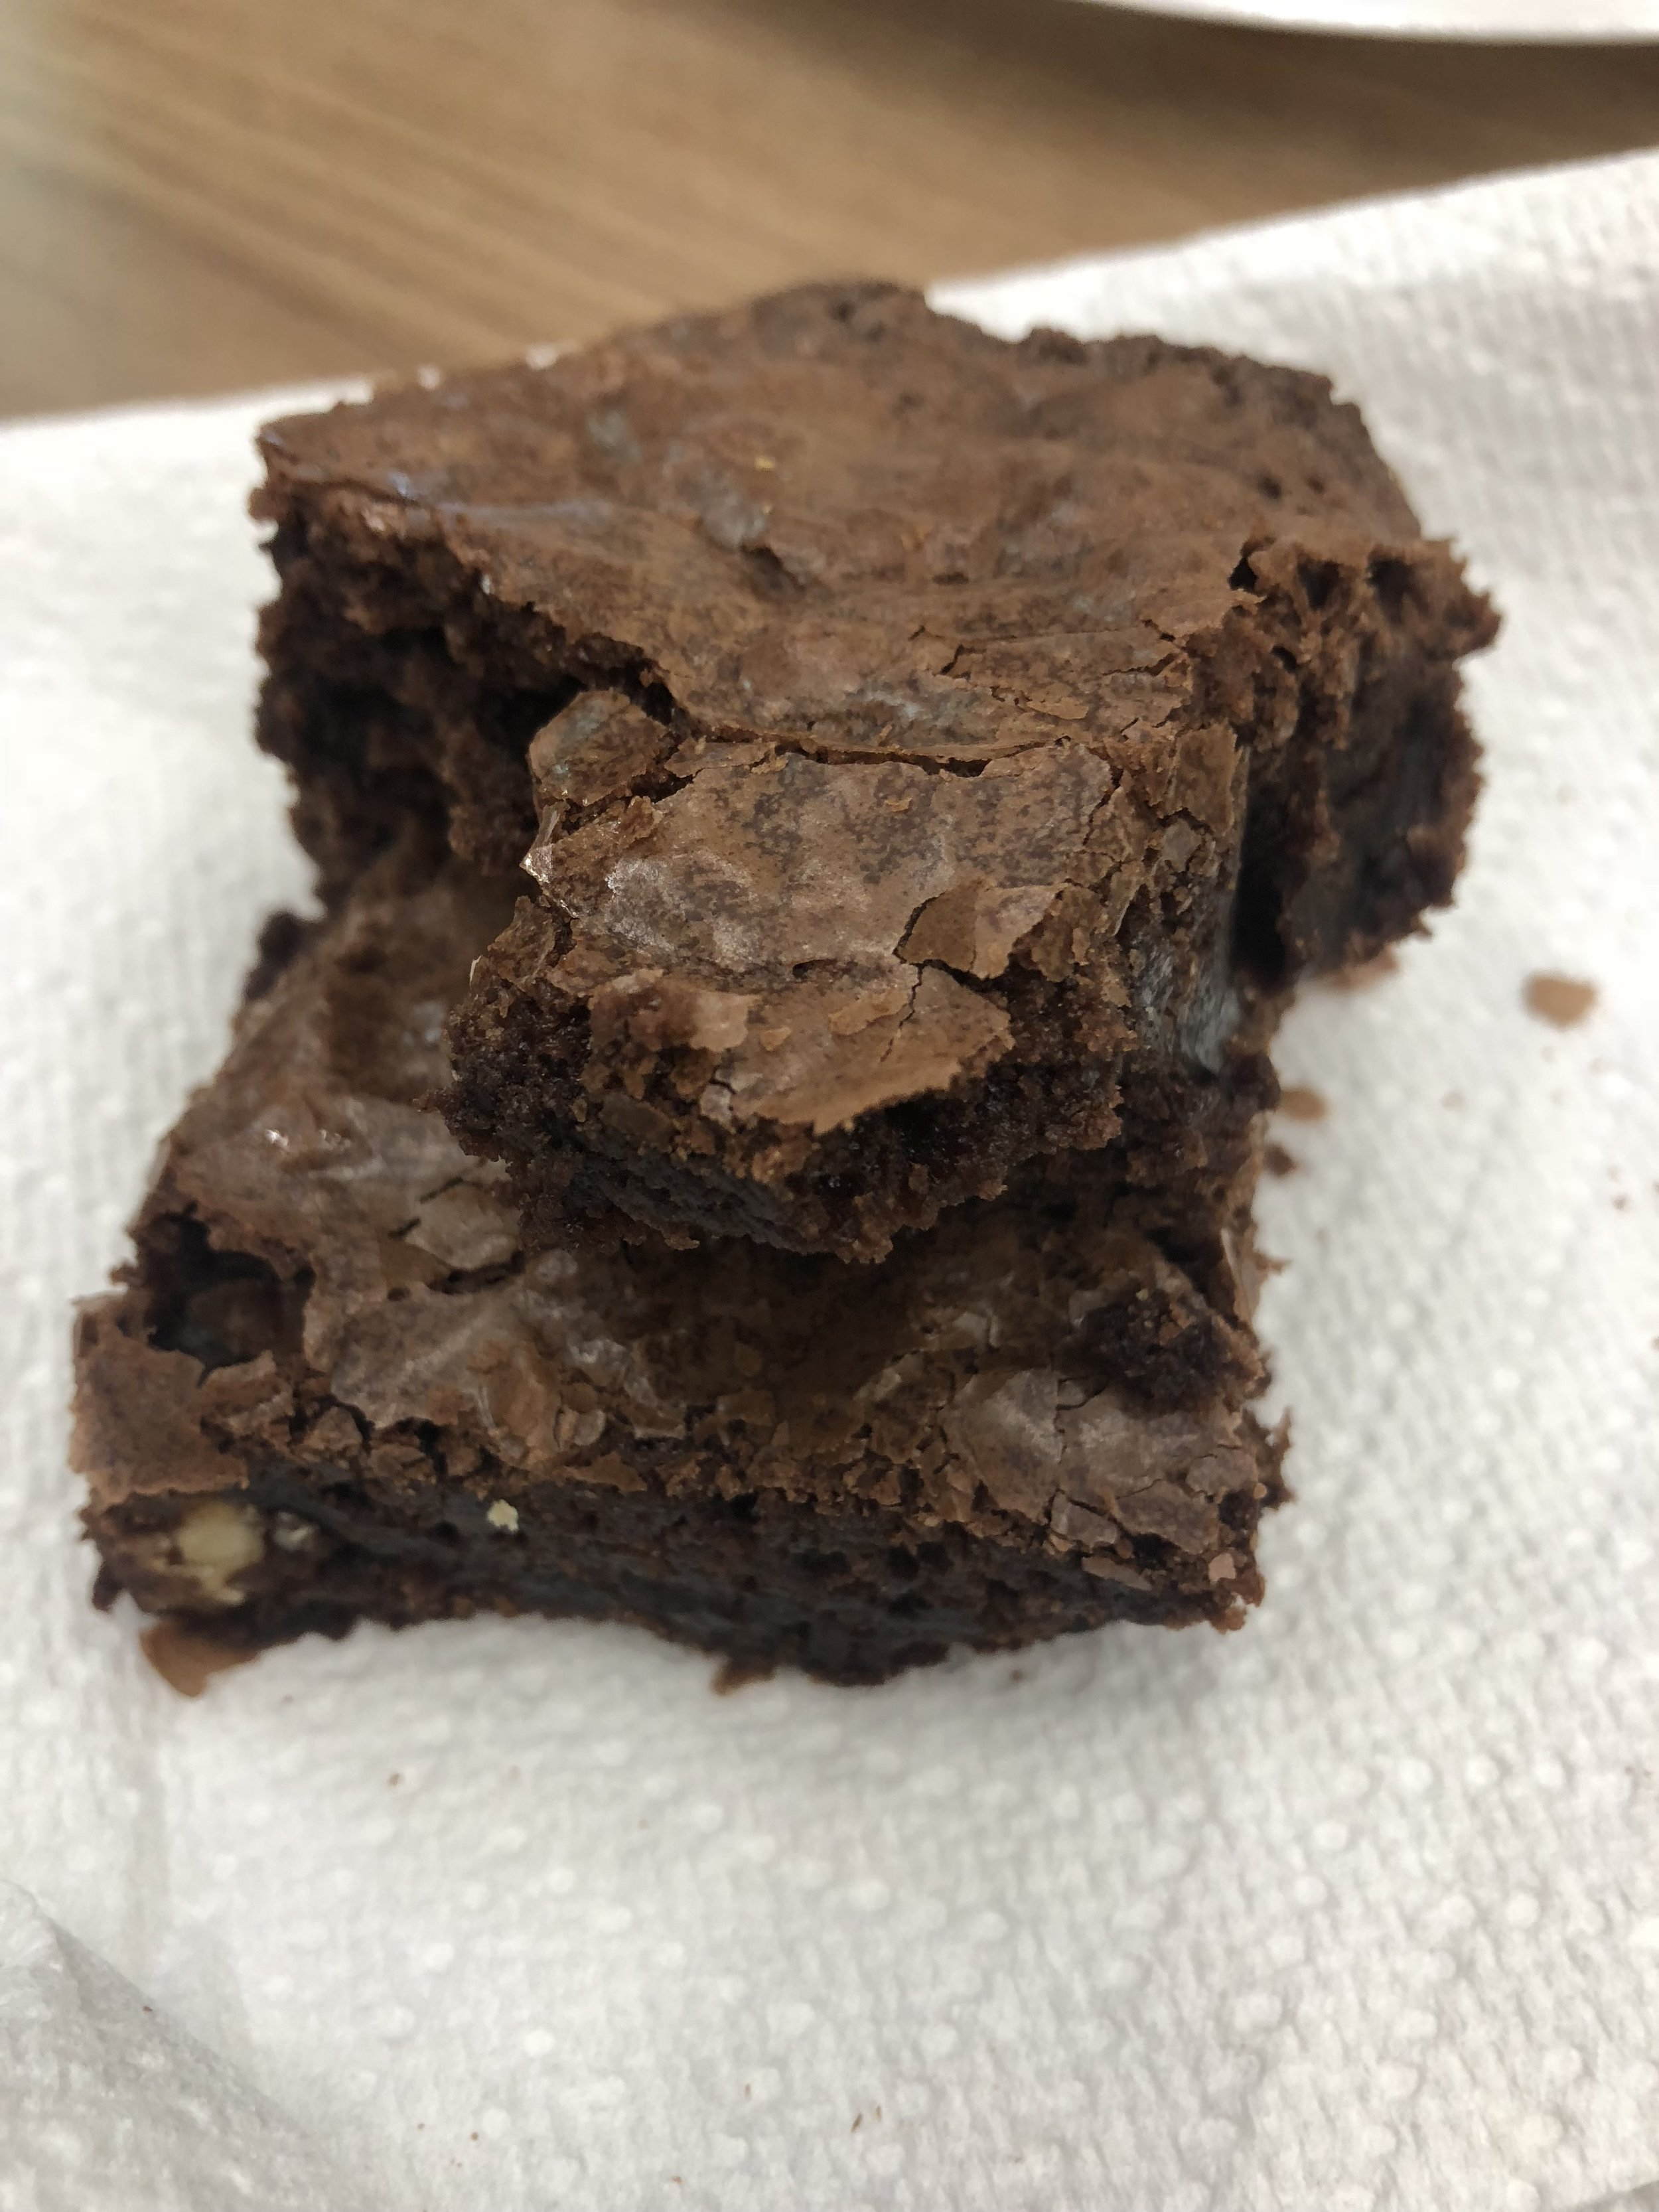 """7179 came to practice again, and brought us a tray of """"special brownies"""" which in this case means with Raisins + Walnuts!"""